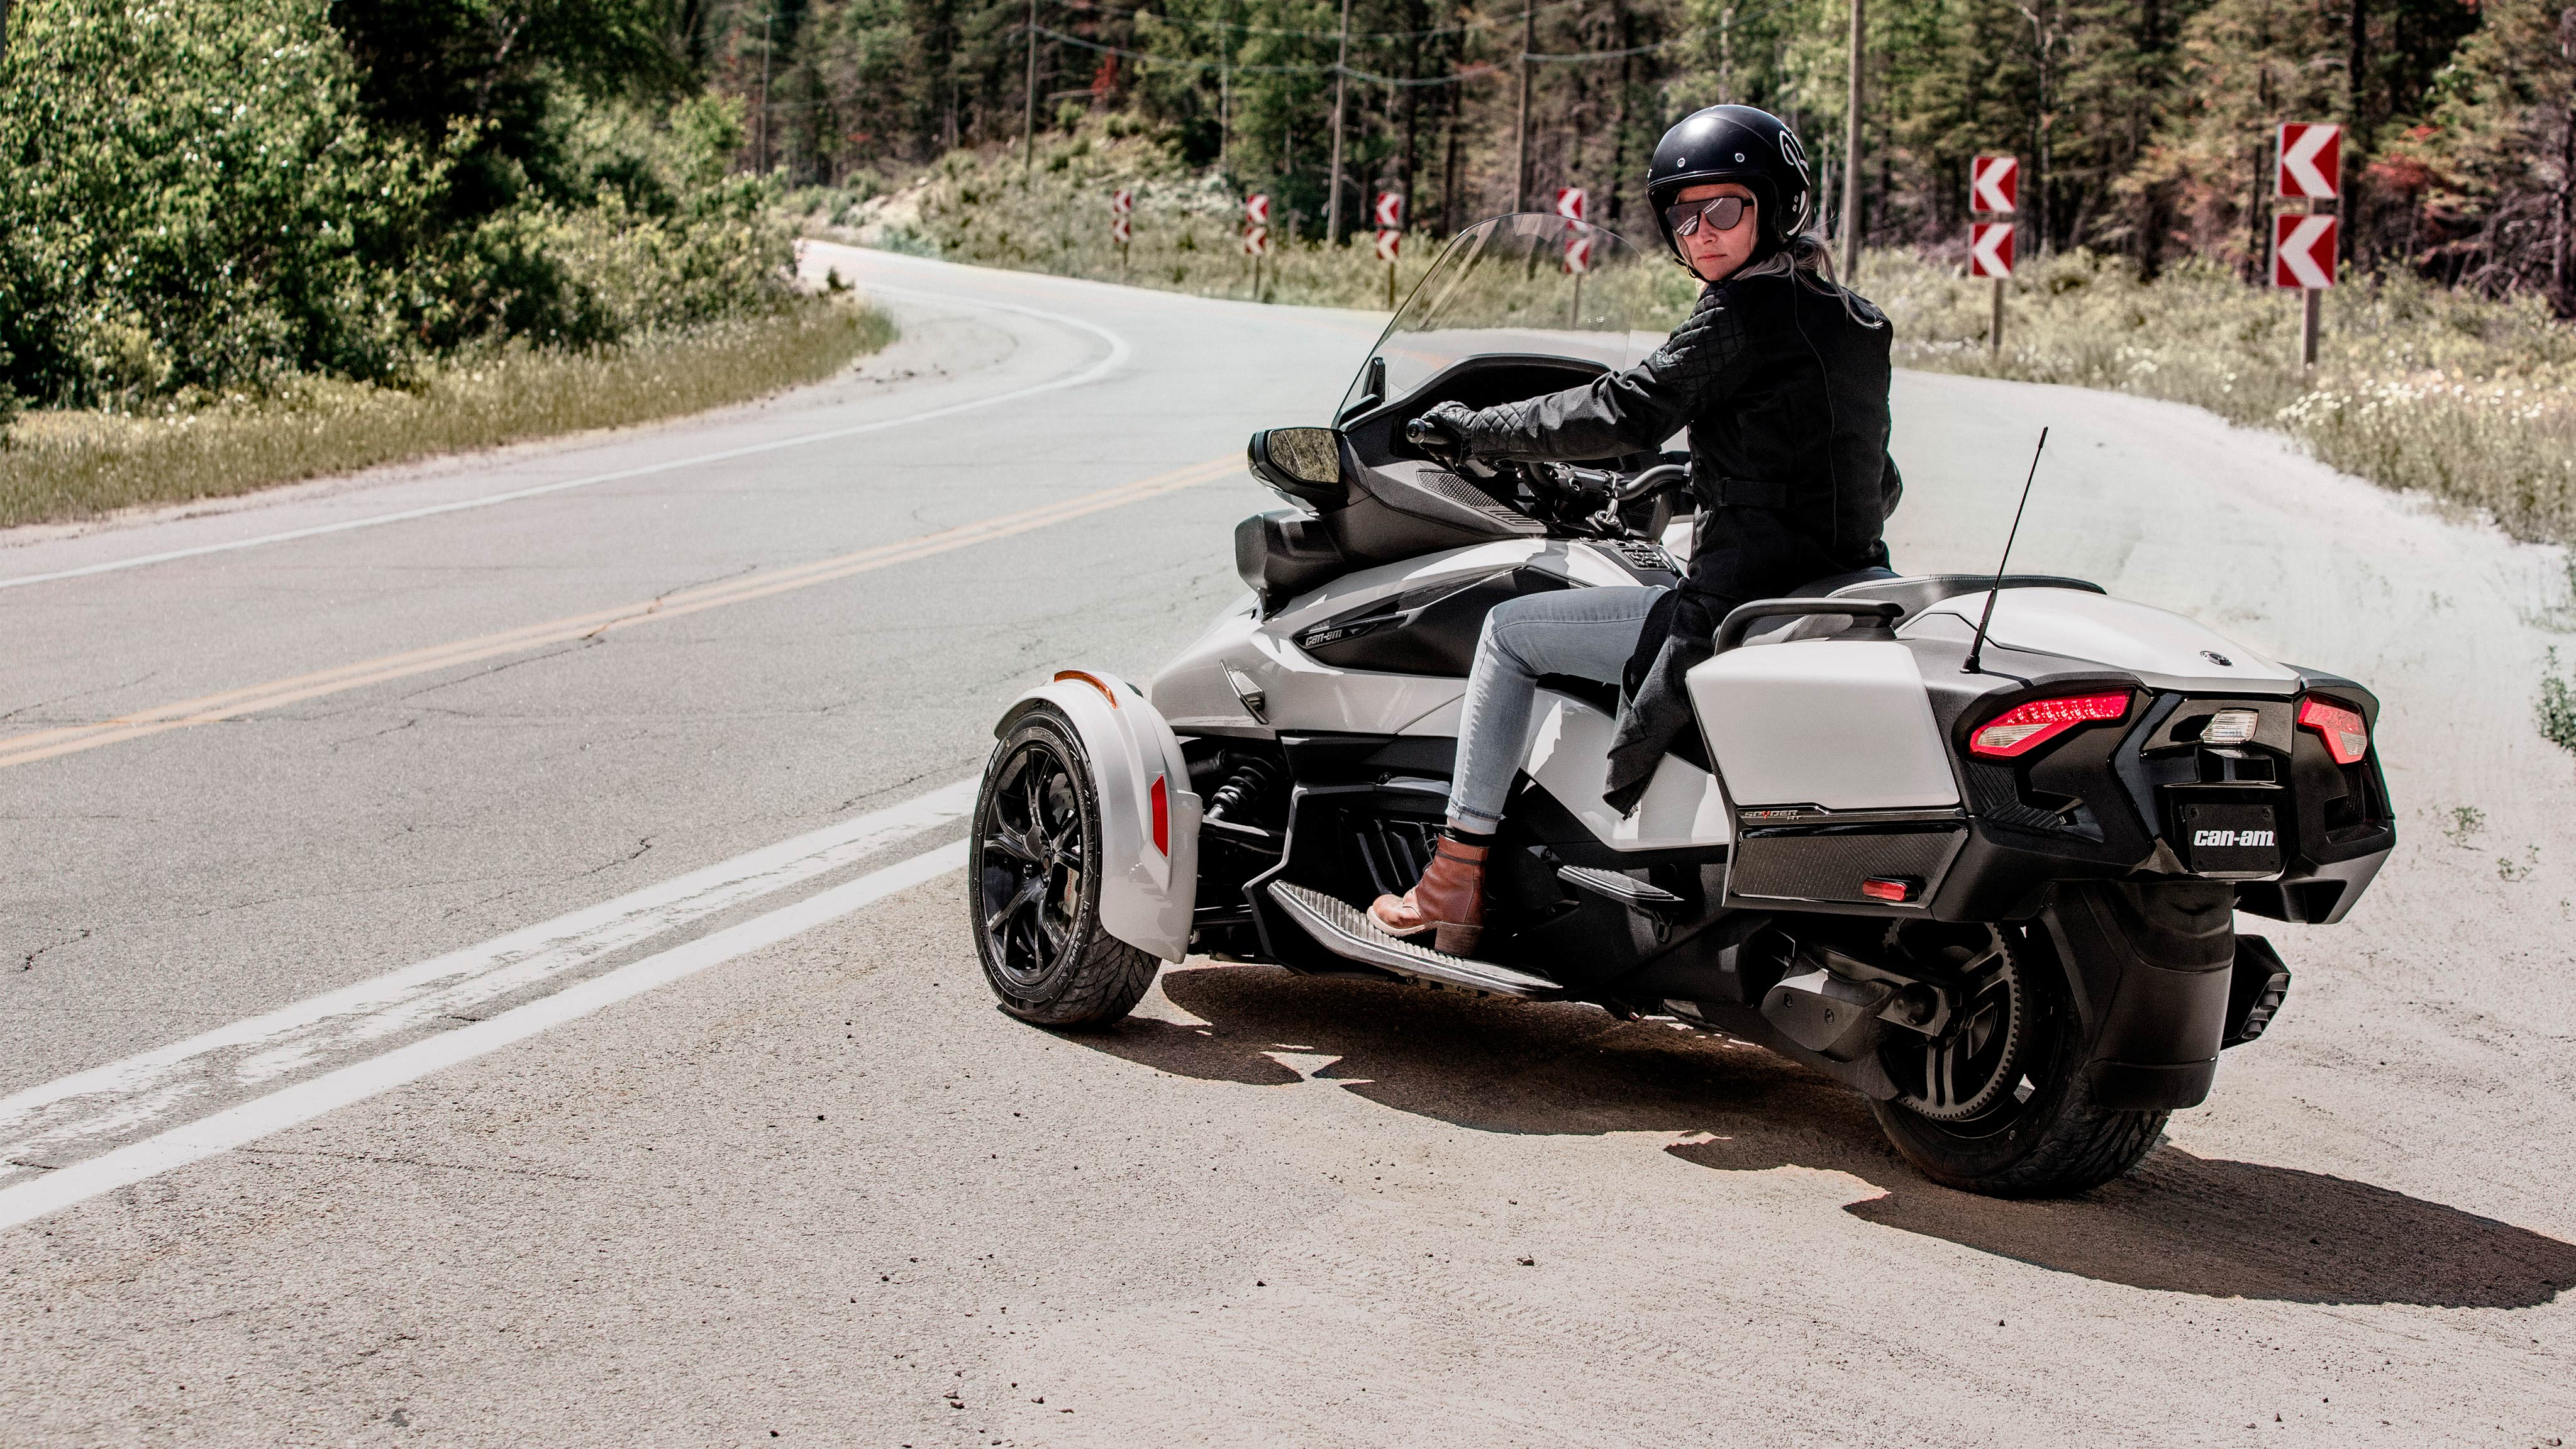 Woman riding Can-Am Spyder RT pearl white vehicle